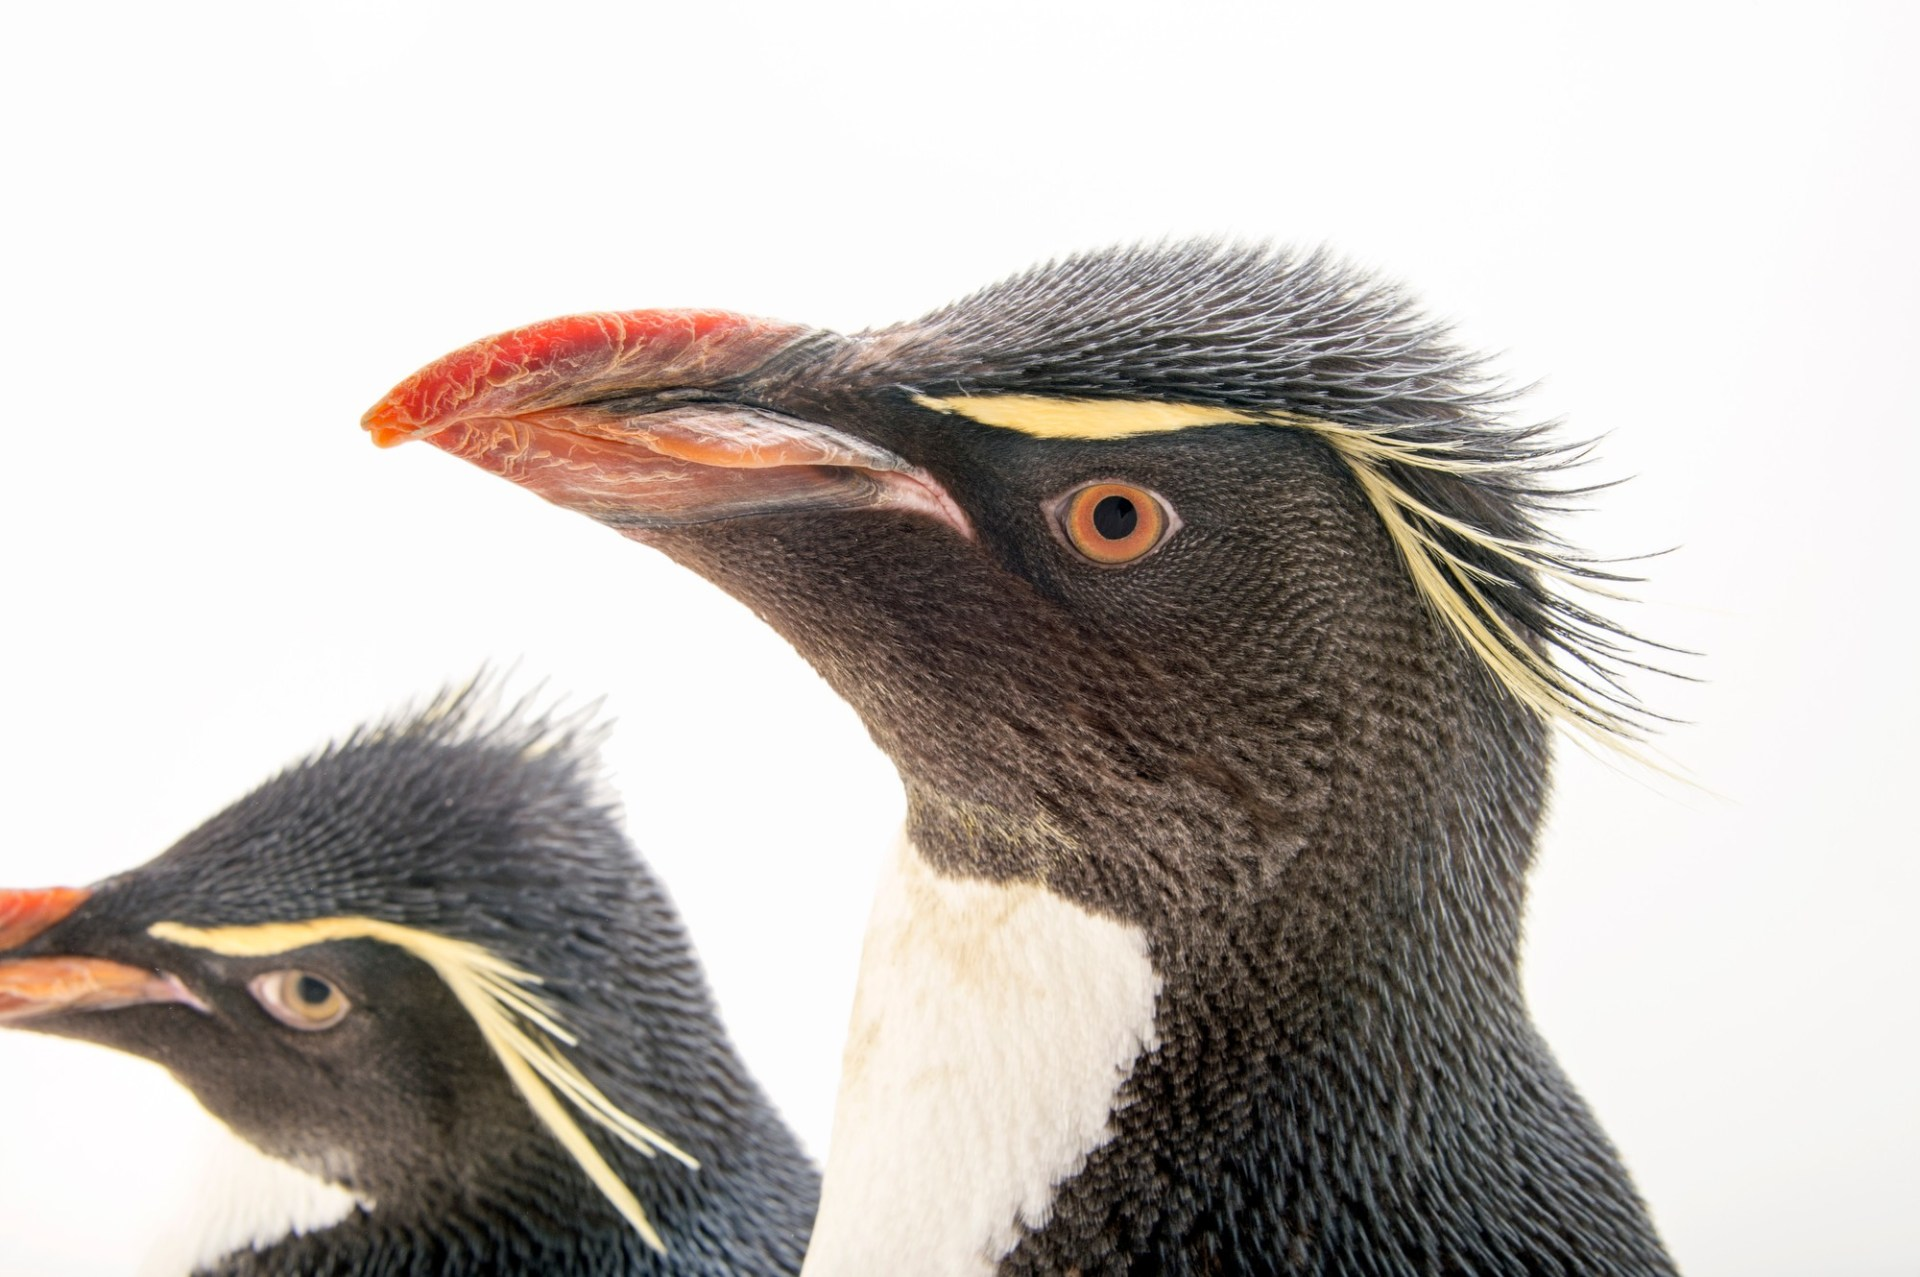 Picture of vulnerable (IUCN) and federally threatened Southern rockhopper penguins (Eudyptes chrysocome chrysocome) at the Newport Aquarium.